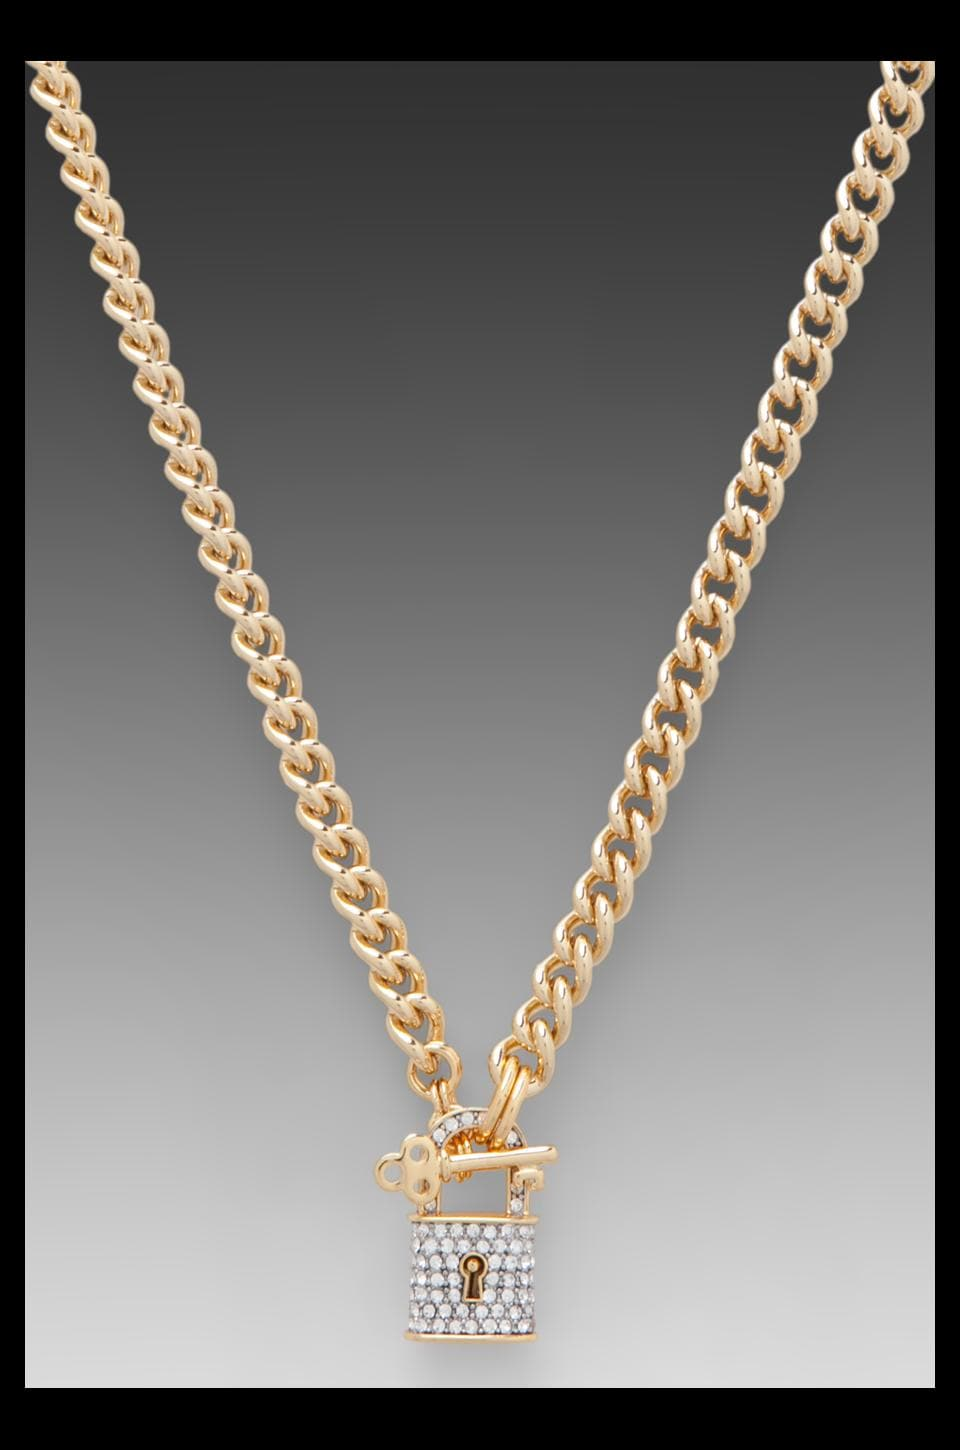 Juicy couture totally secure couture pave padlock chain necklace in juicy couture totally secure couture pave padlock chain necklace in gold aloadofball Gallery